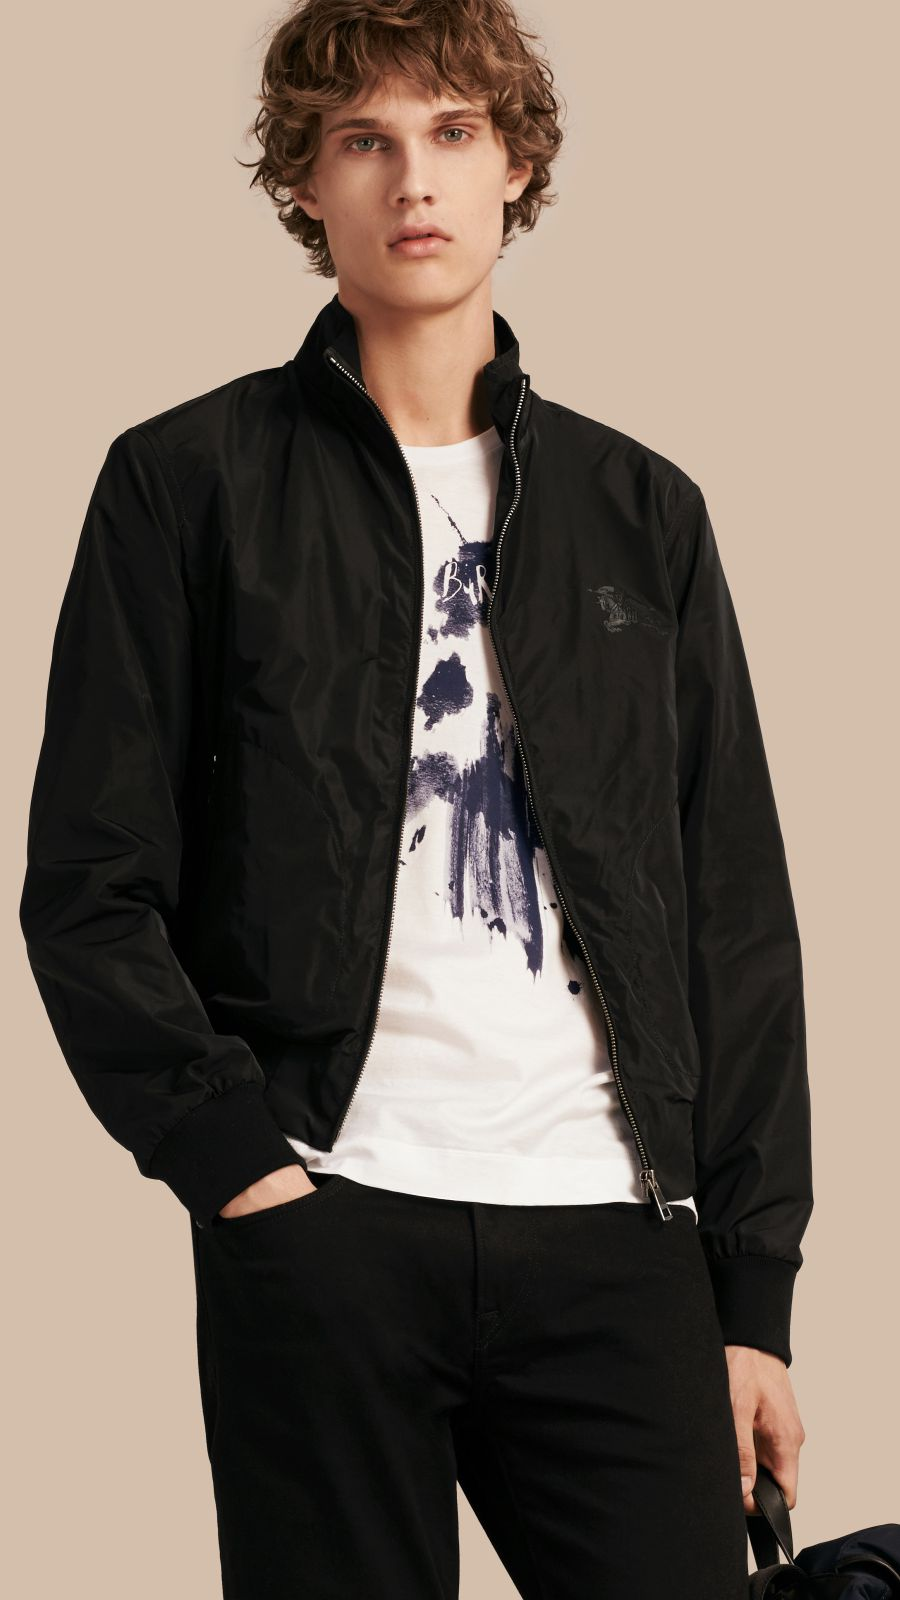 Black Zip Front Packaway Jacket Black - Image 1